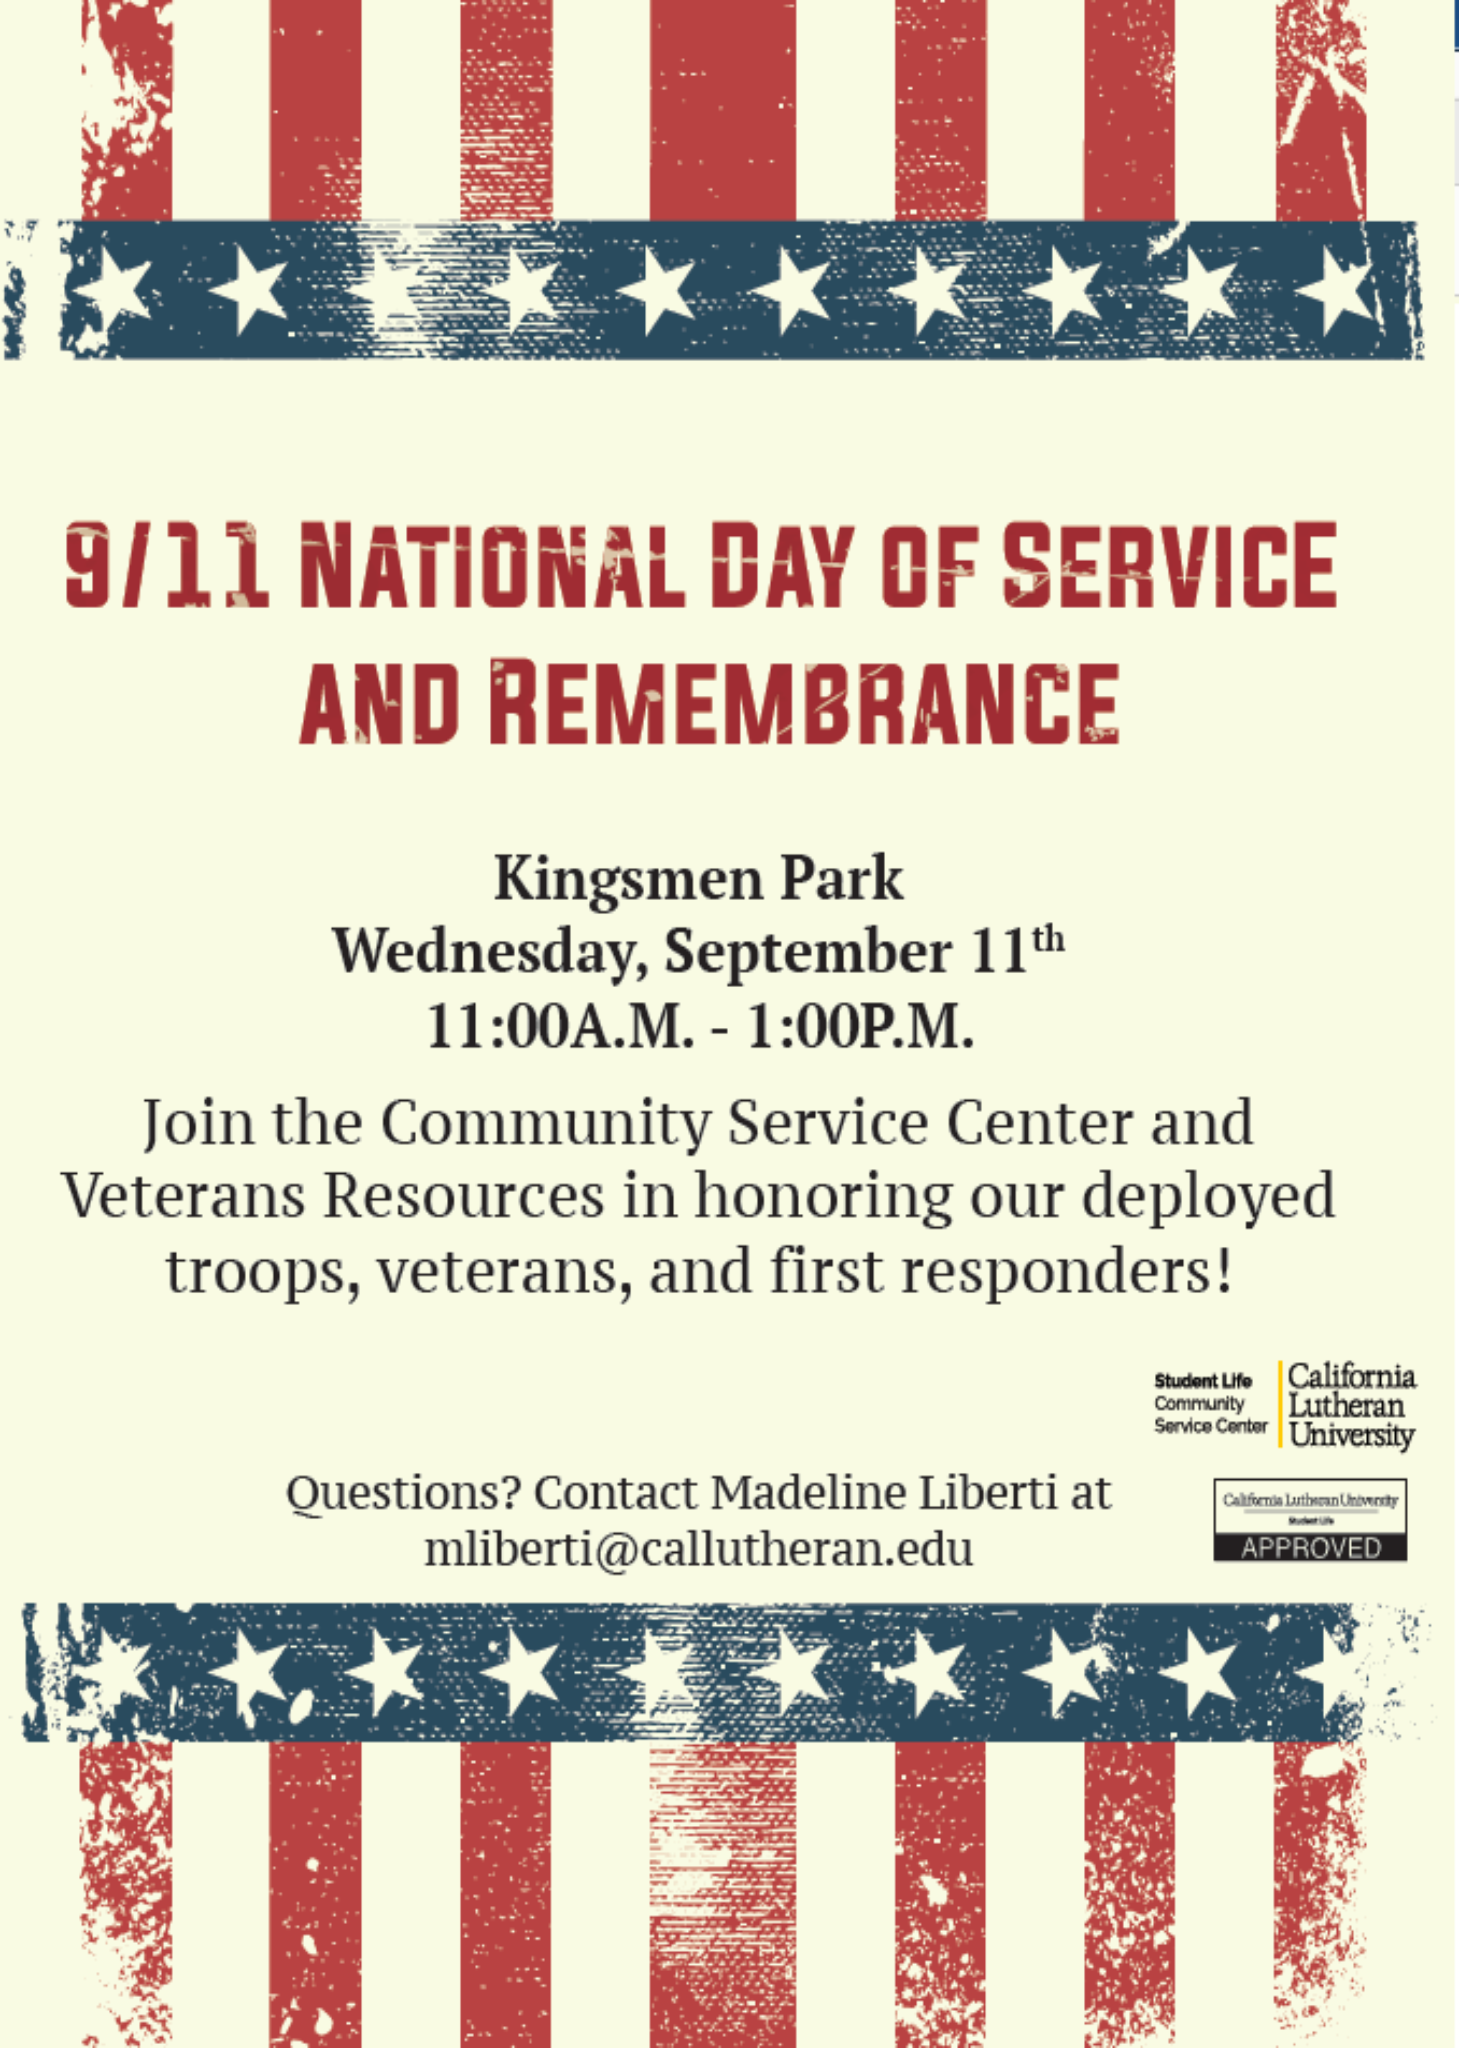 9/11 Remembrance Event